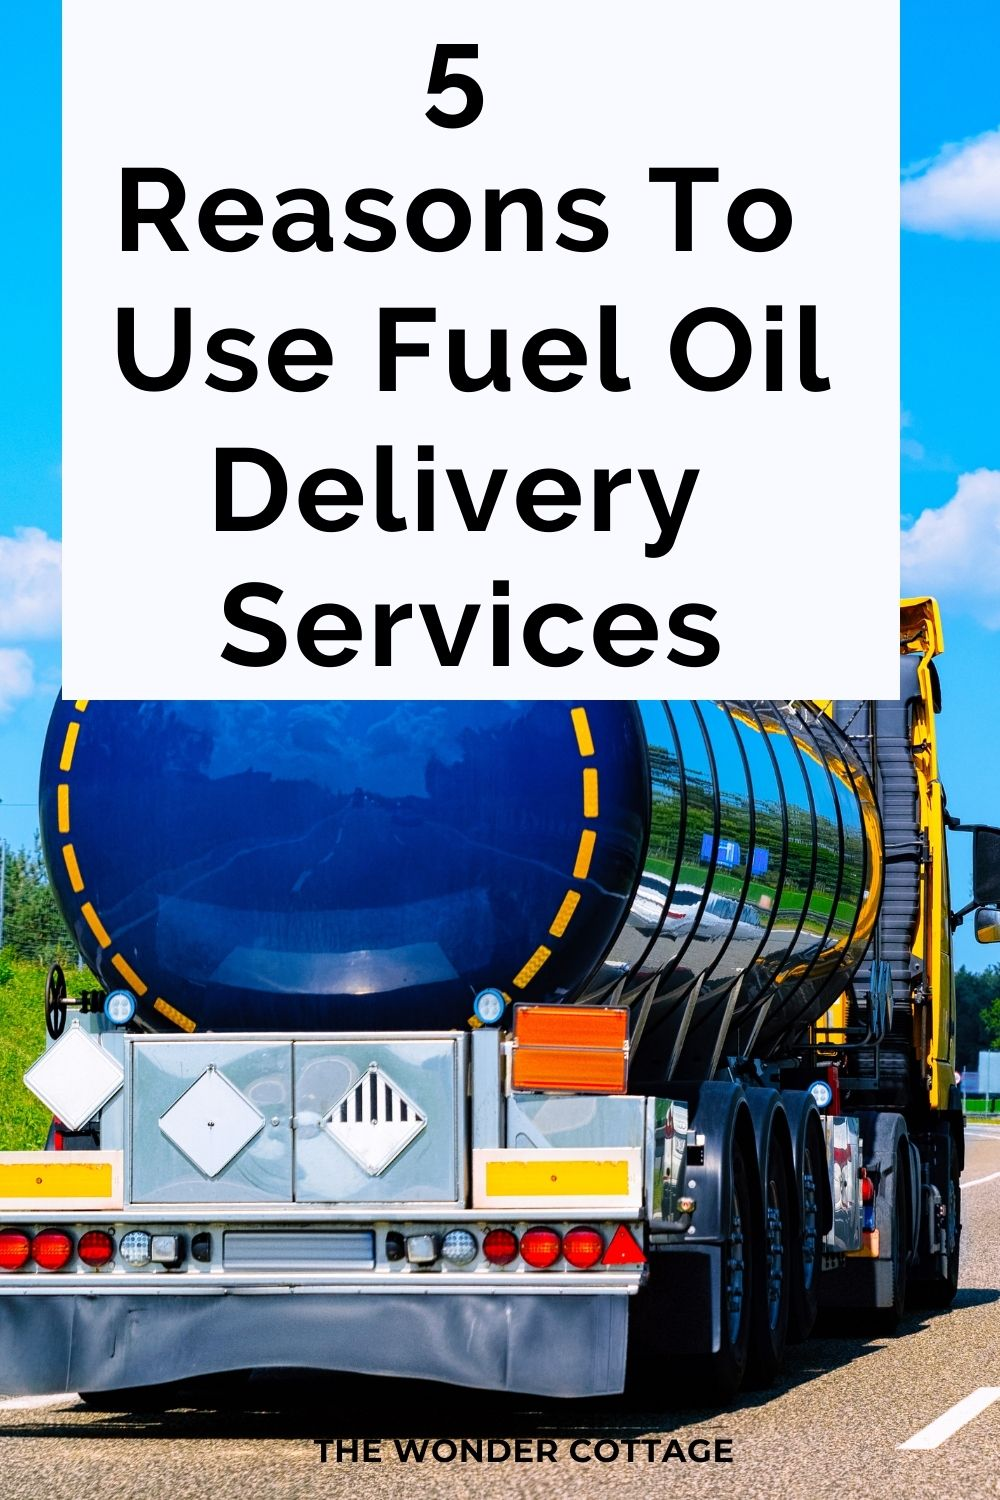 5 reasons to use fuel oil delivery services